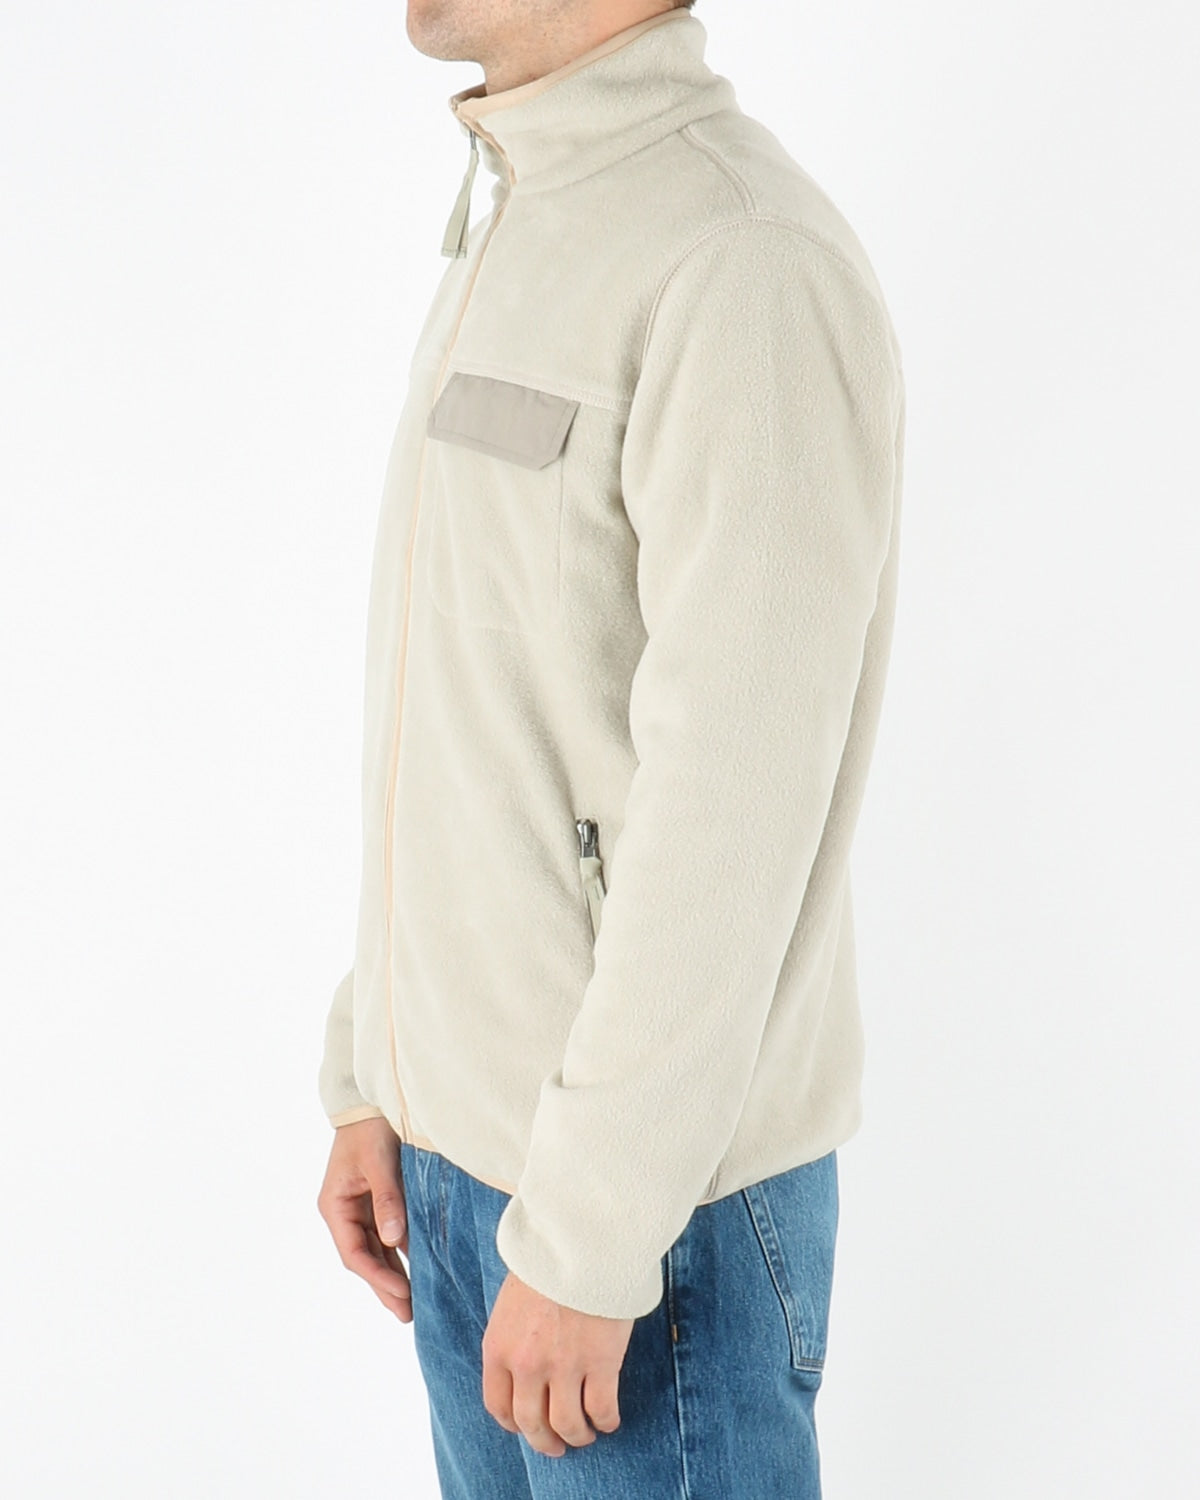 legends_kodiak fleece jacket_ecru_2_3